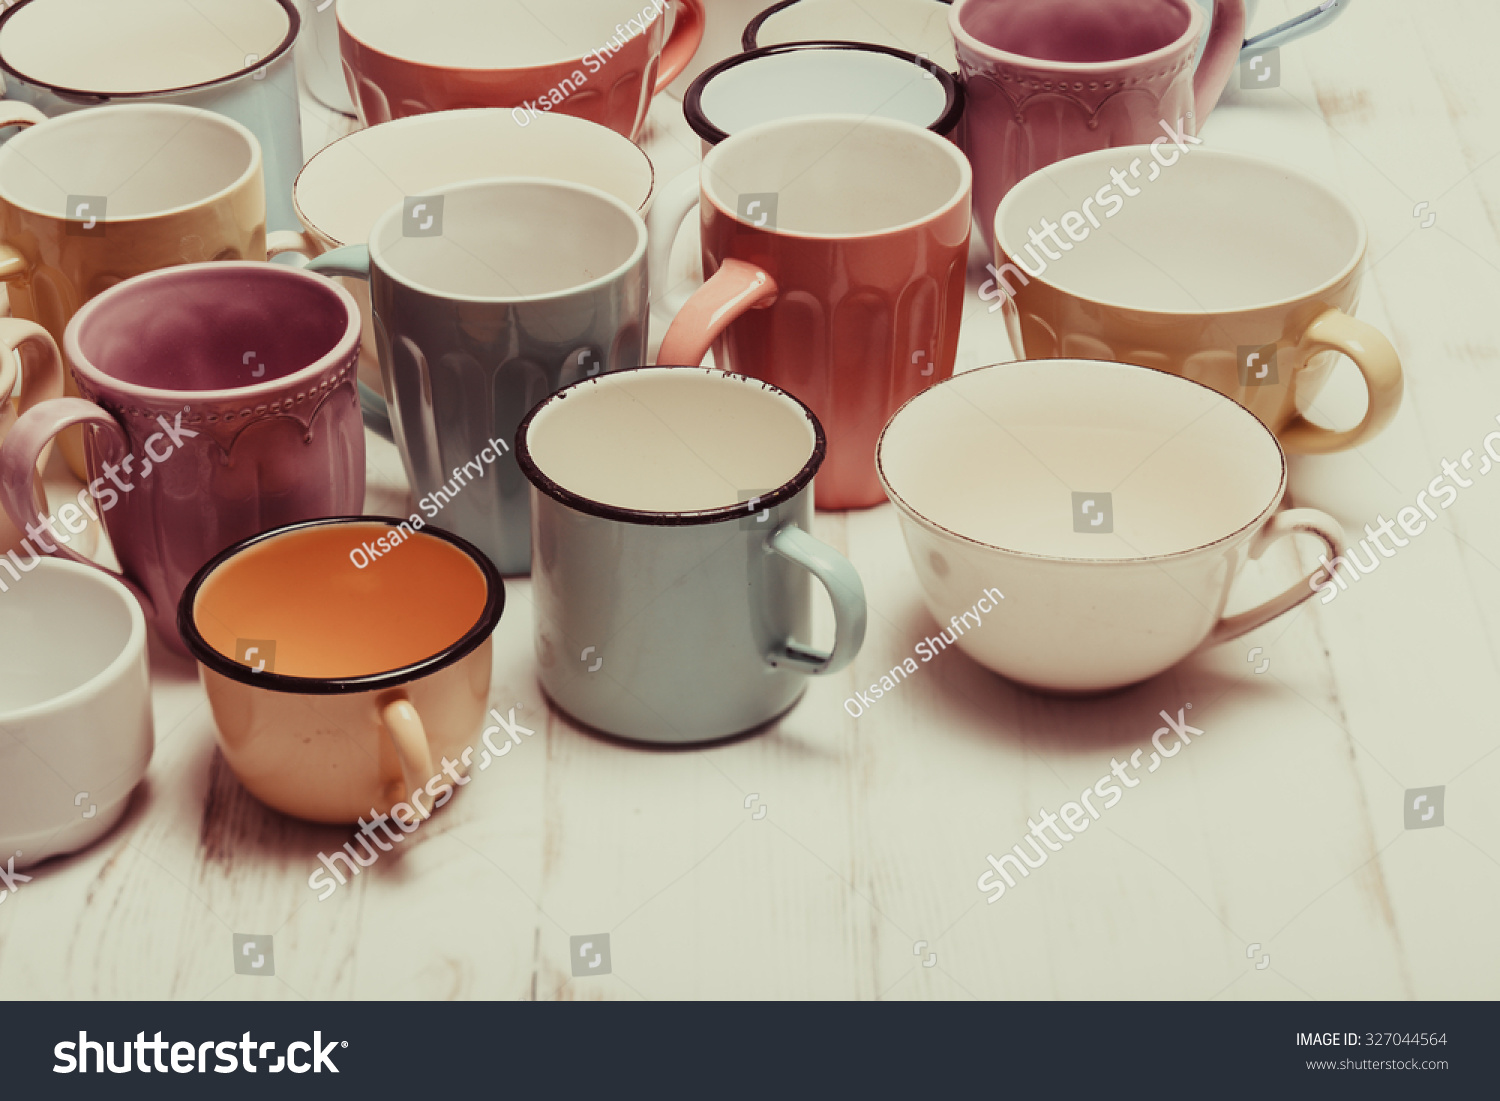 Shabby Chic Colors Style : Cups shabby chic style vintage colors stock photo edit now